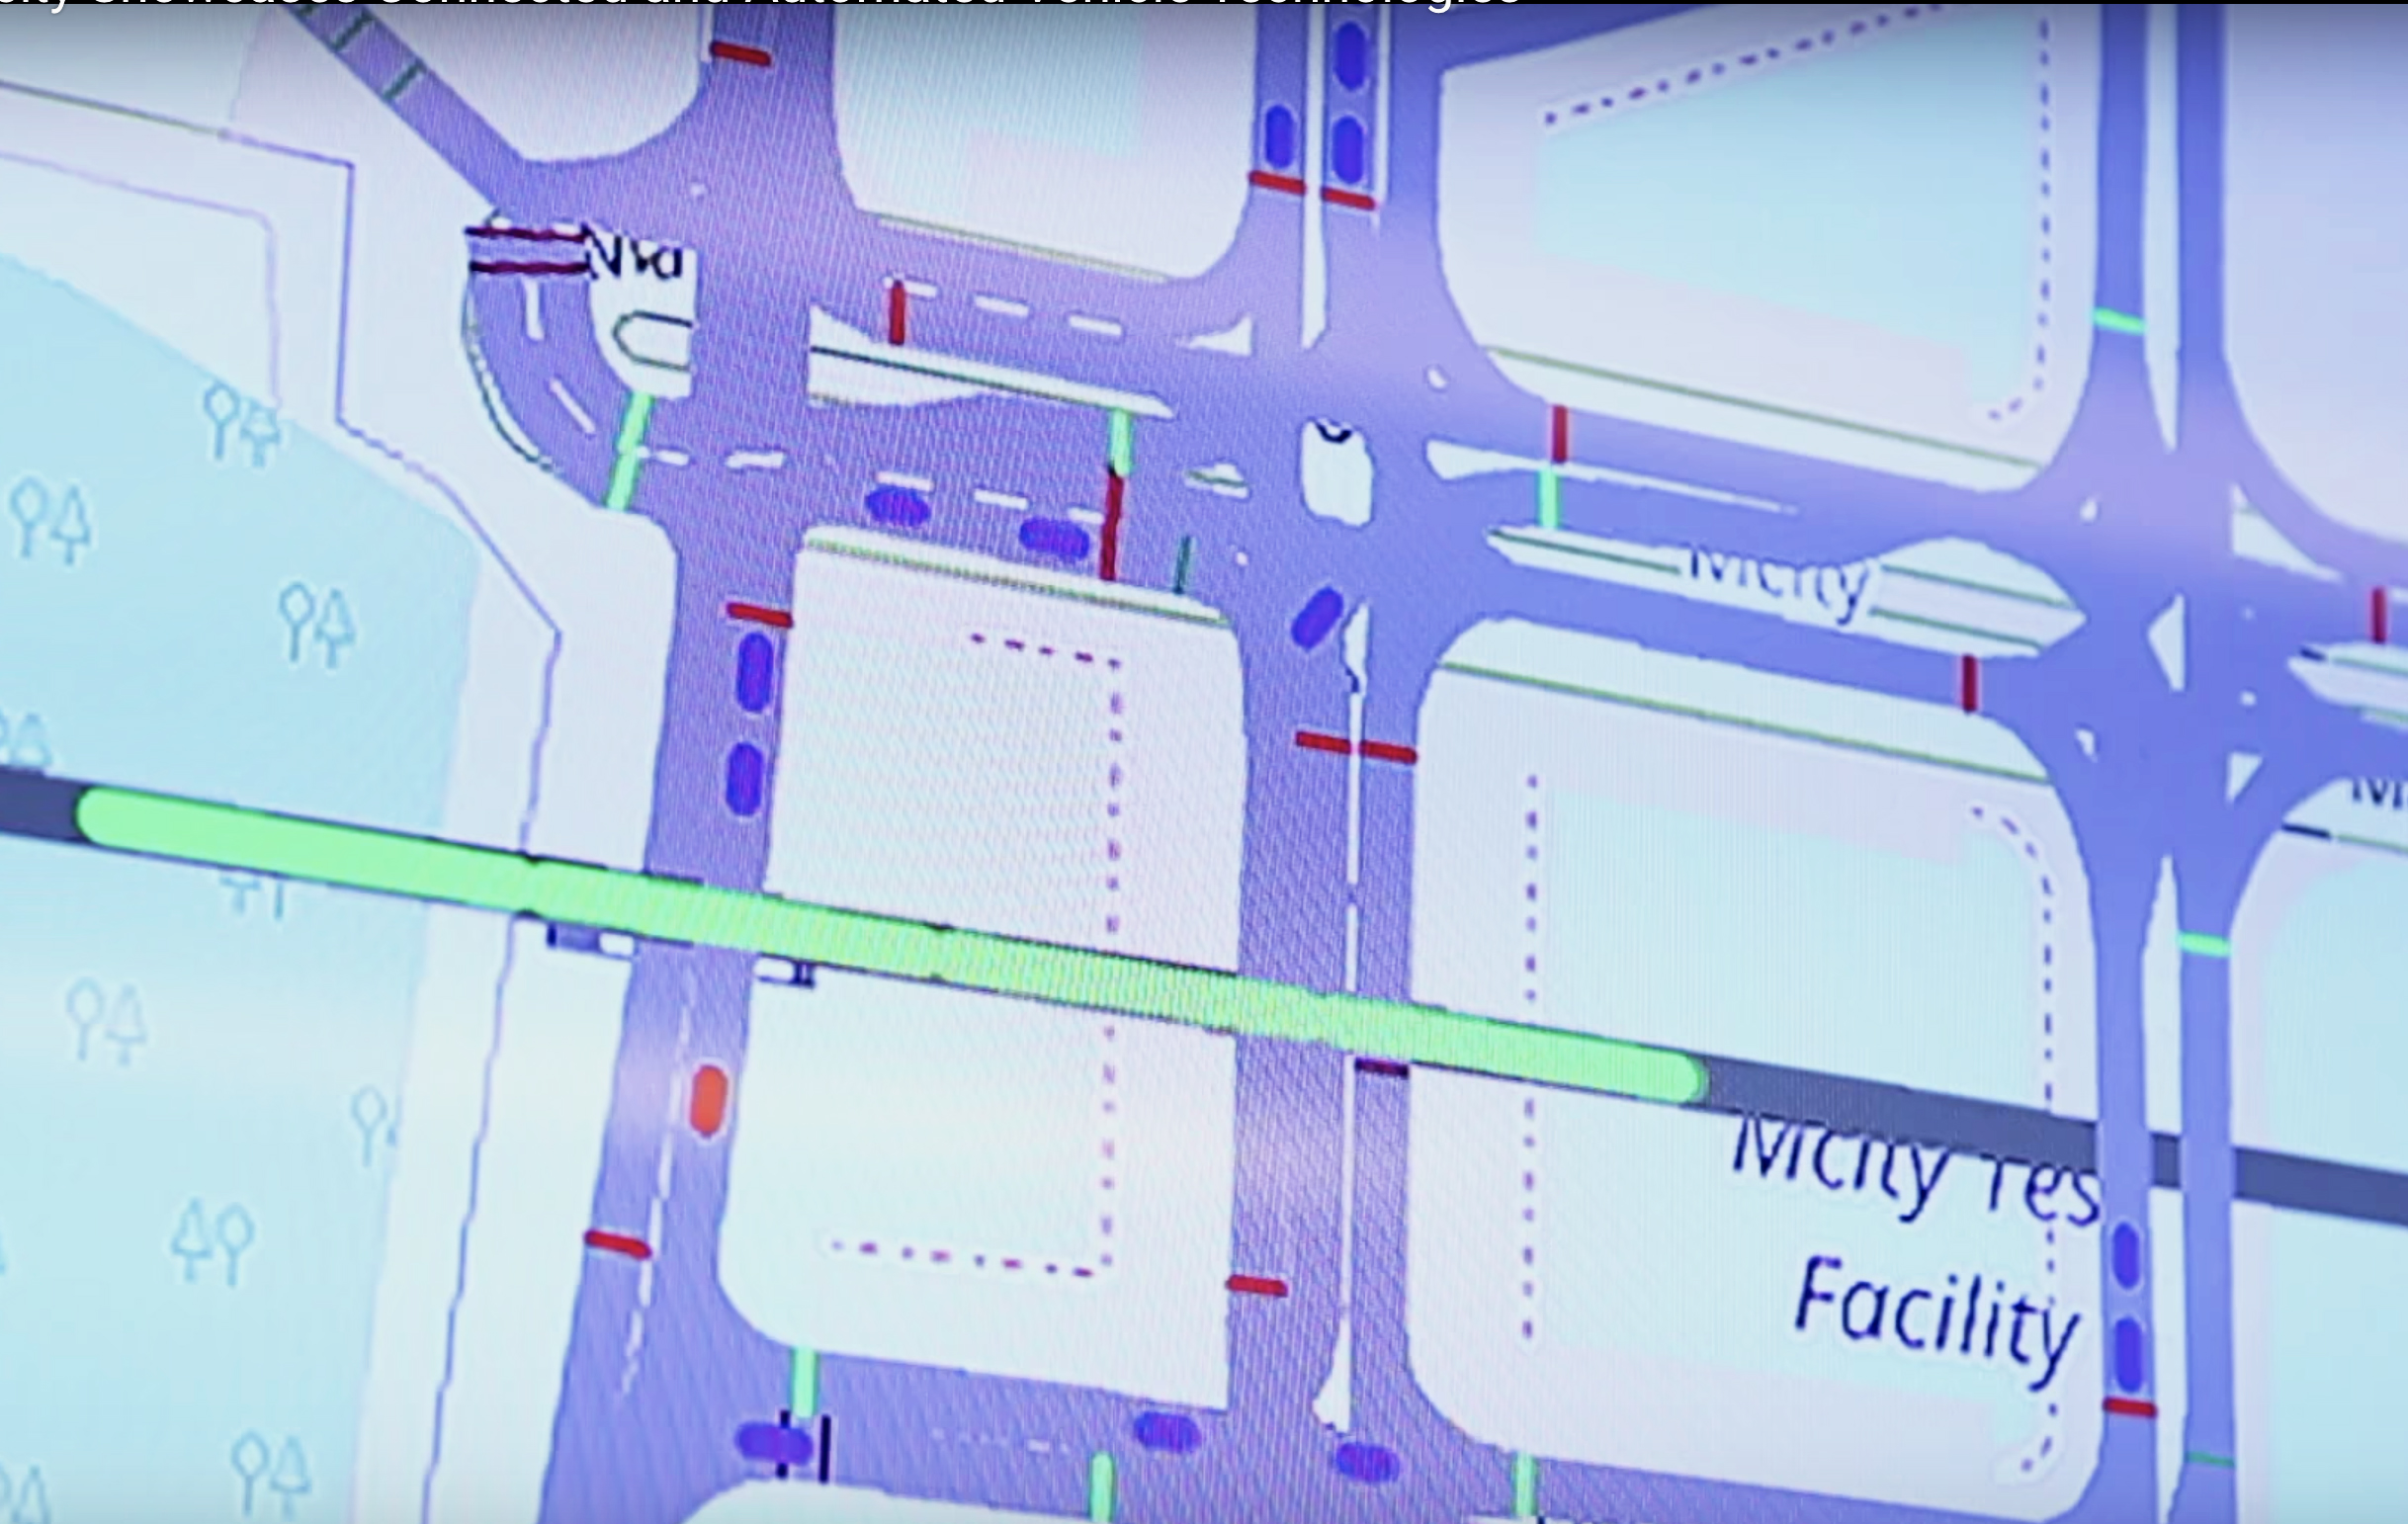 An image of the screen in the Michigan Traffic Lab while a virtual train (in green) travels through a rail crossing at Mcity. Real (red) and simulated vehicles (blue) react. Image credit: Screen capture from a video by Mike Wood